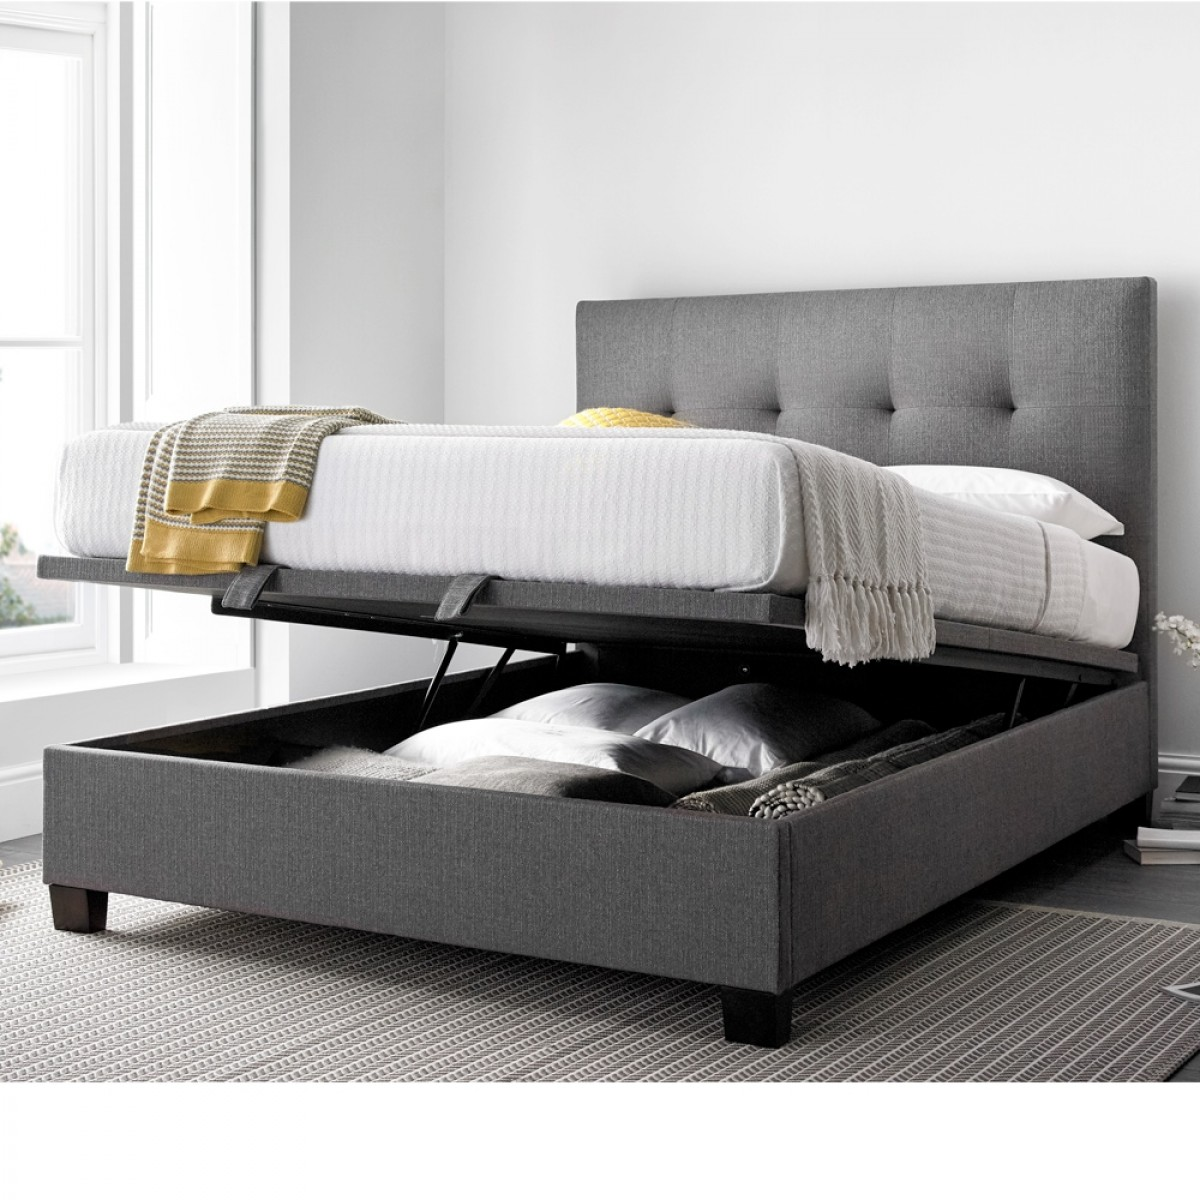 Groovy Yorkie Grey Fabric Ottoman Bed Creativecarmelina Interior Chair Design Creativecarmelinacom